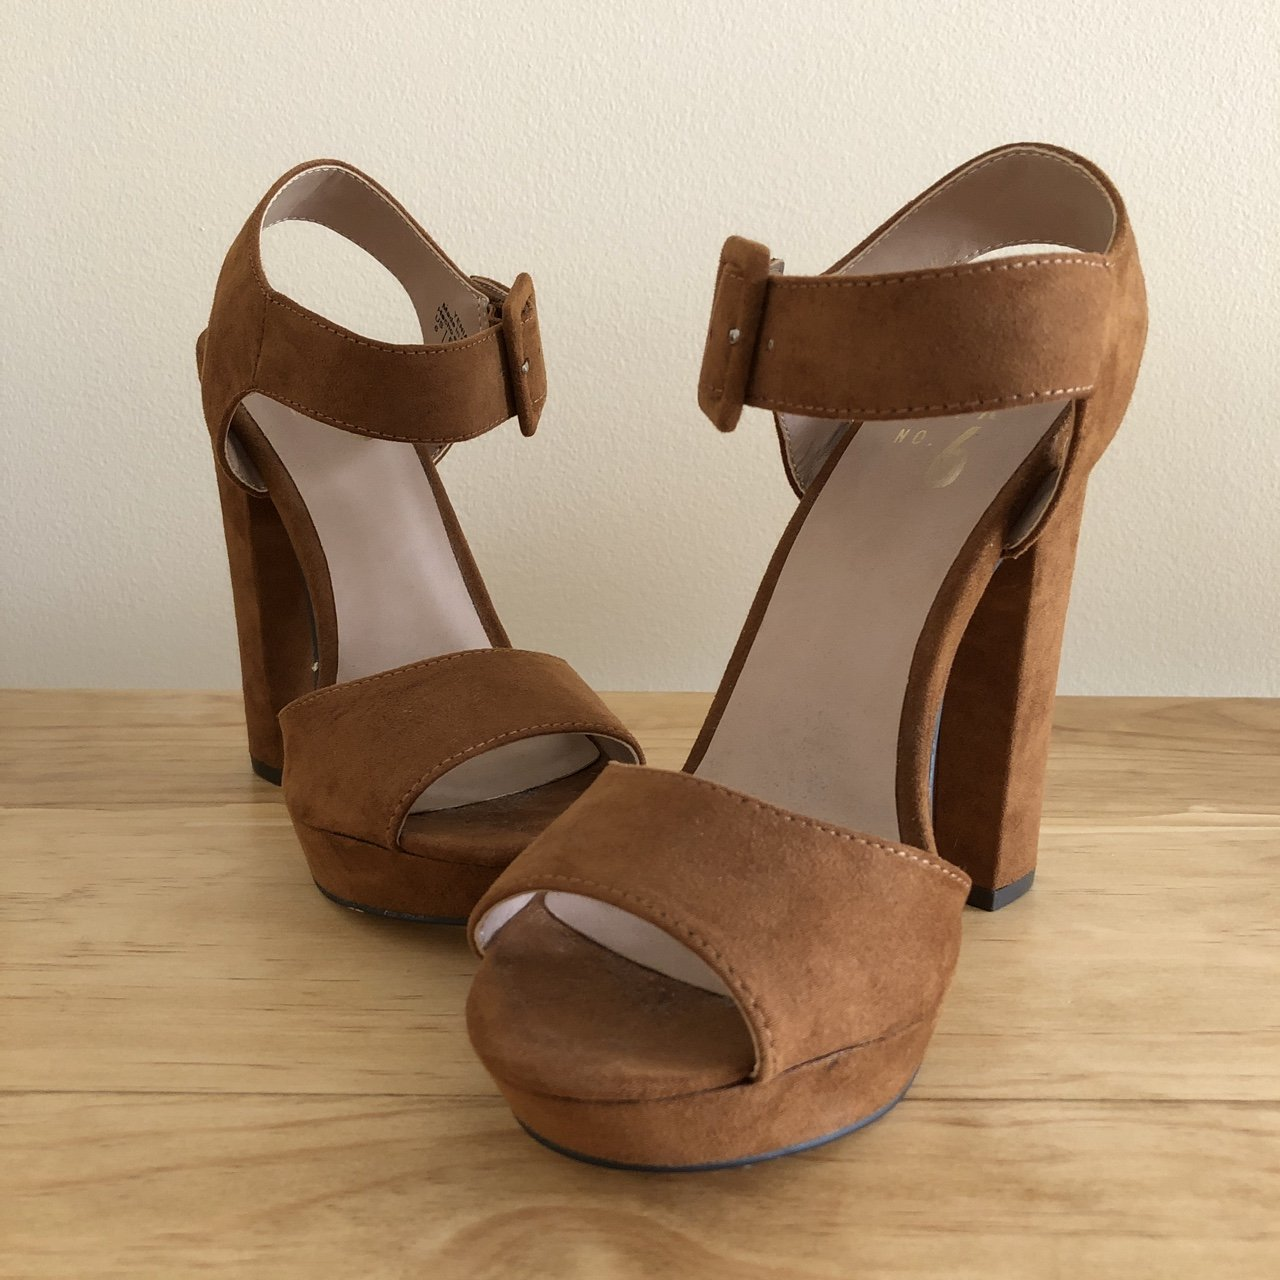 940c679cb5f Mix no. 6 US size 6 pecan brown suede chunky heels. Never - Depop